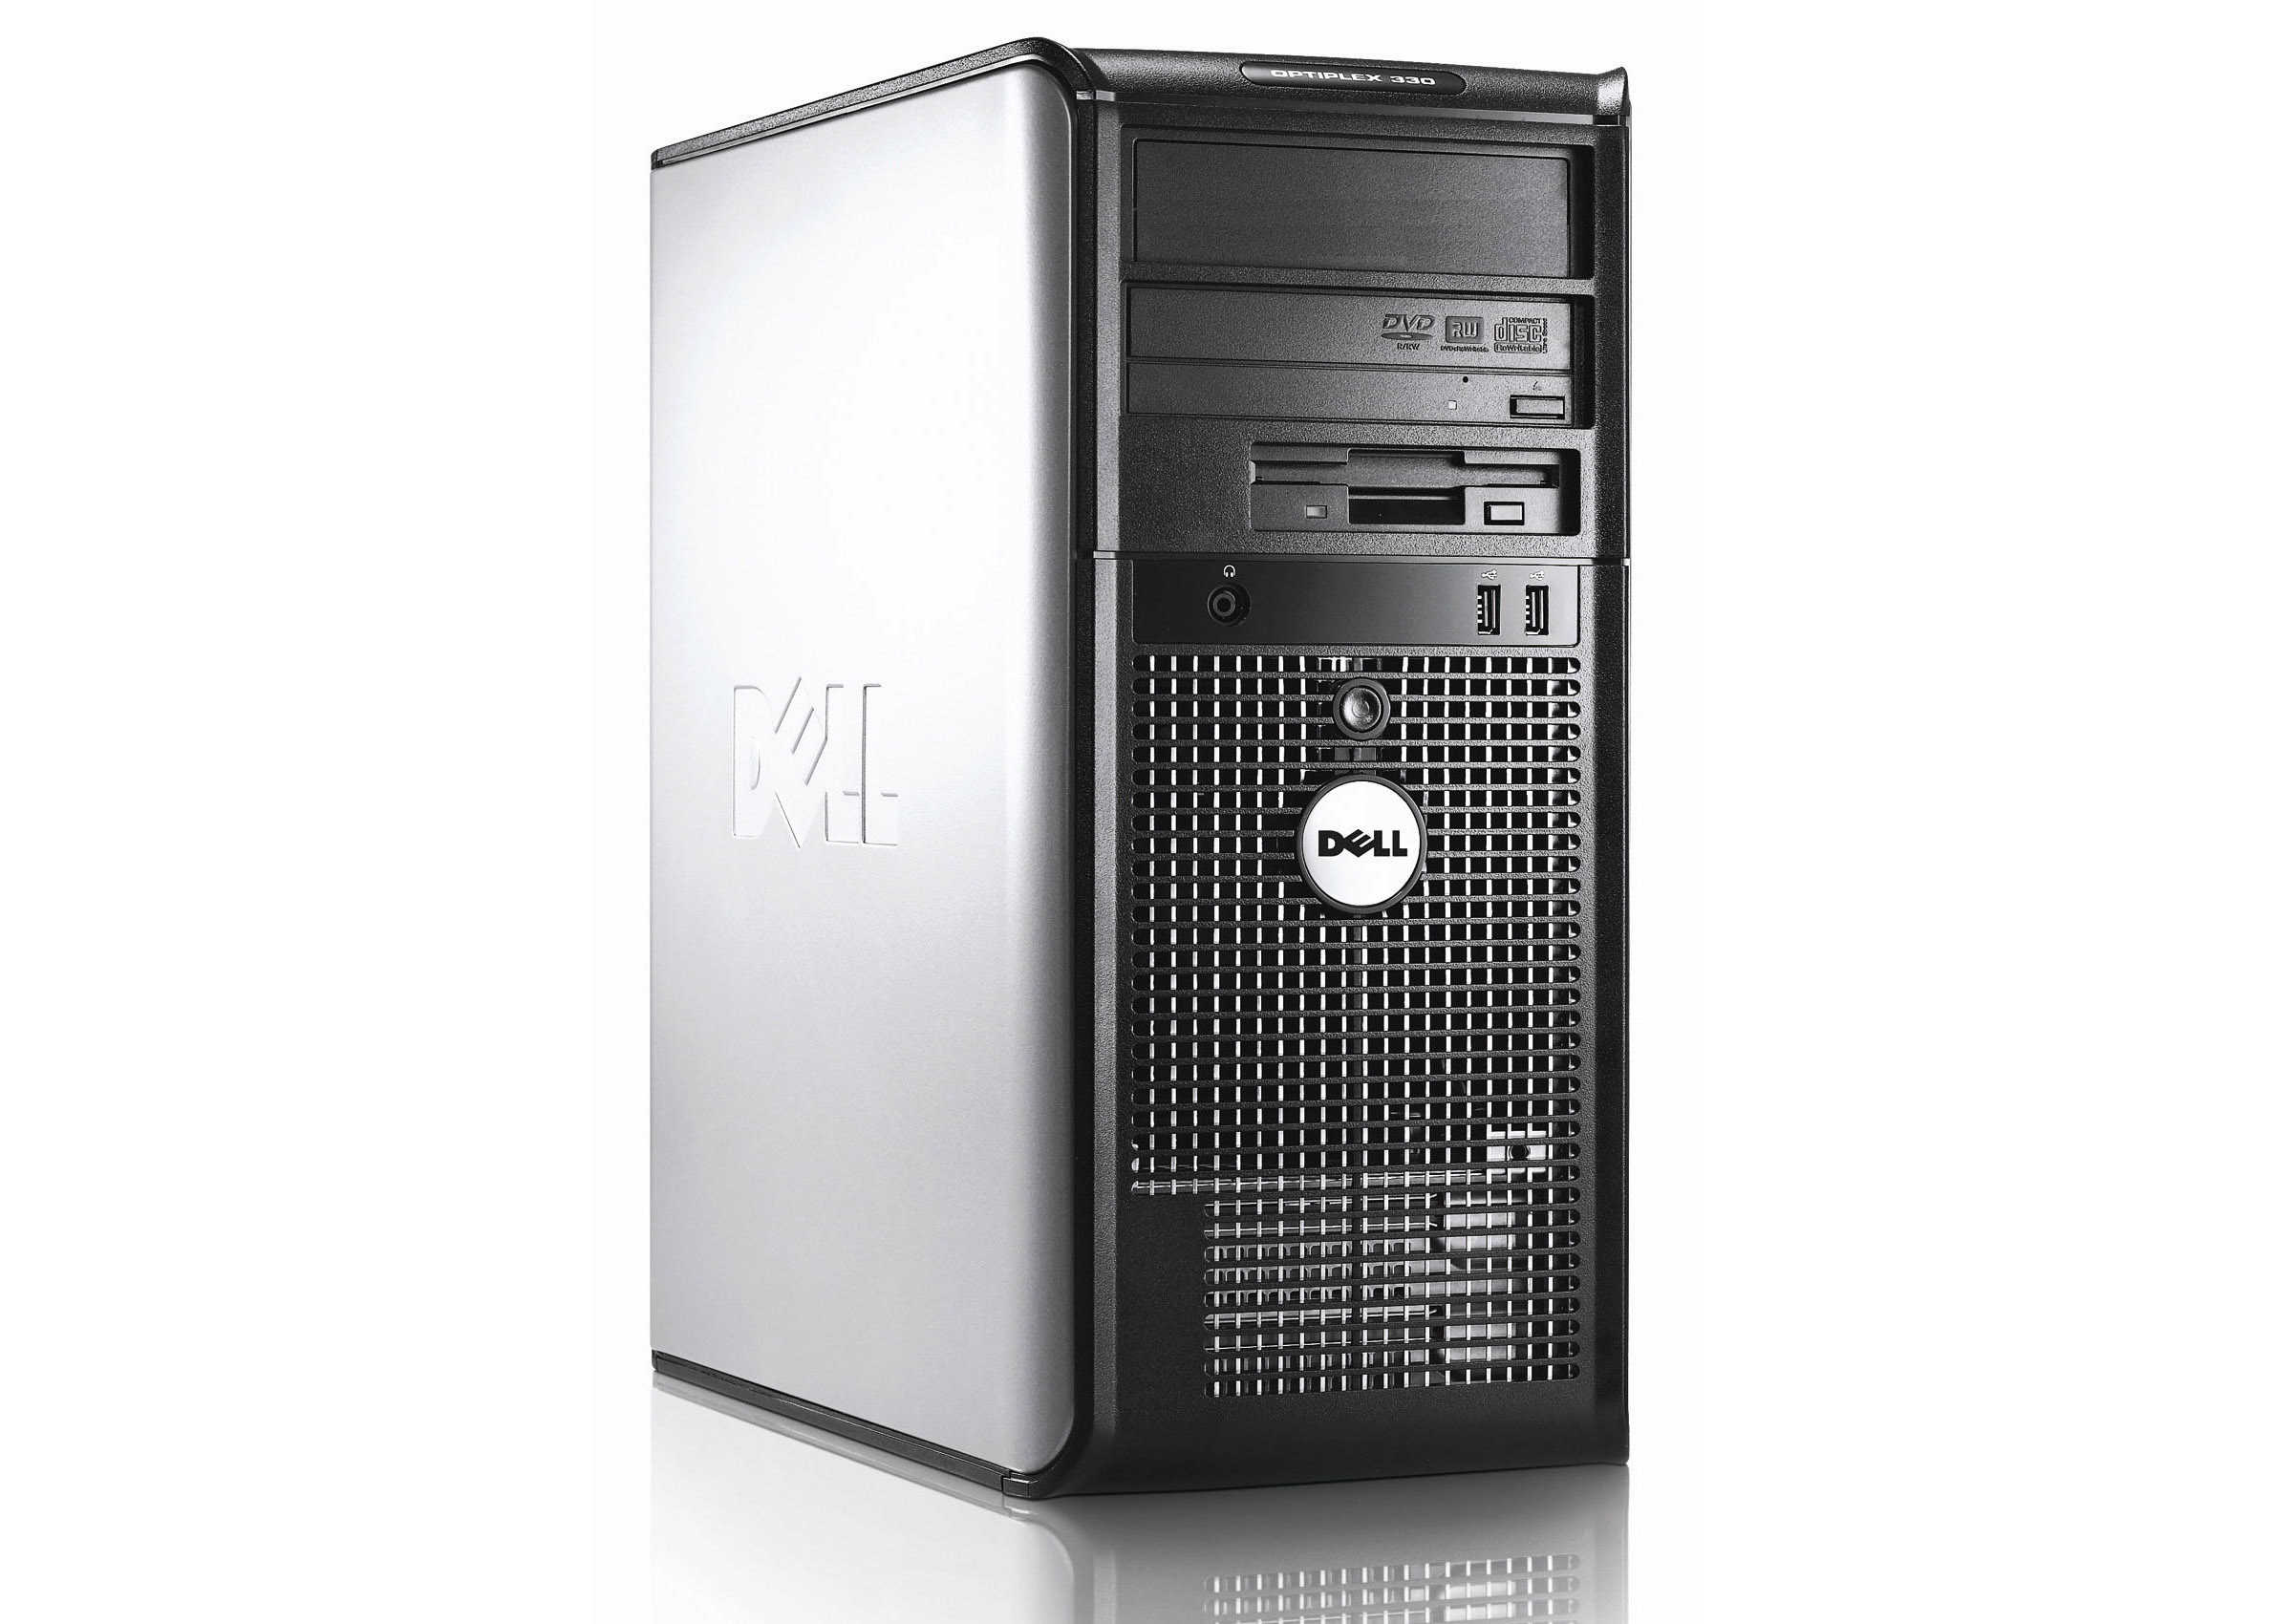 REFURBISHED: Optiplex GX760 Tower - 160GB HDD, 4GB Ram, DVD-Rom, Windows 7 Home